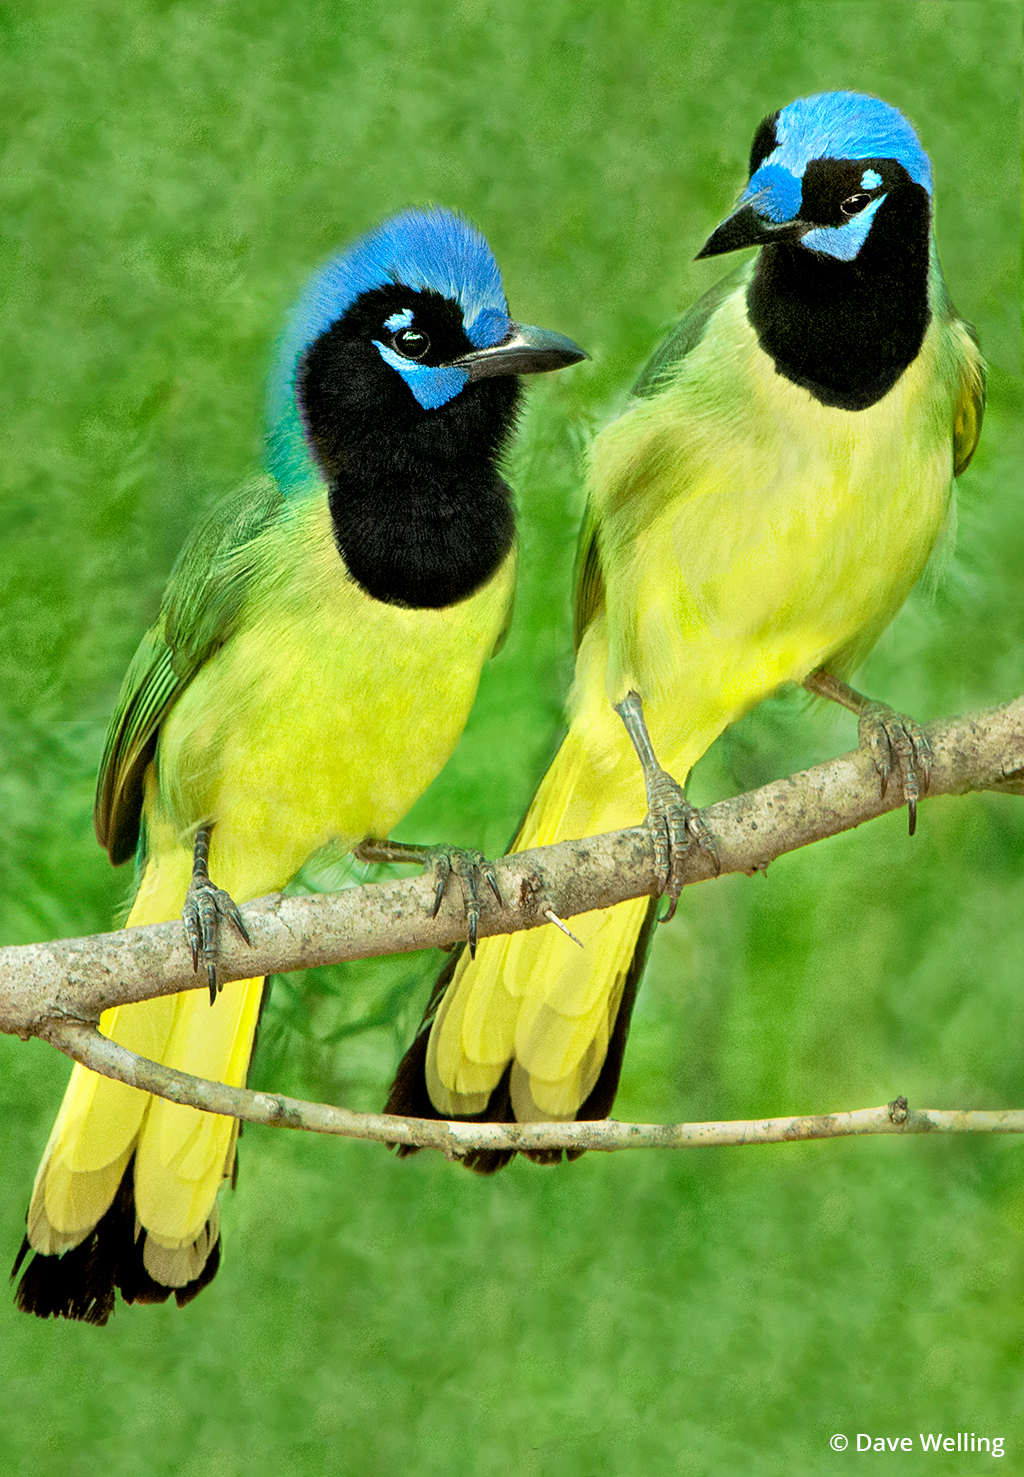 Texas wildlife includes green jays pictured here.